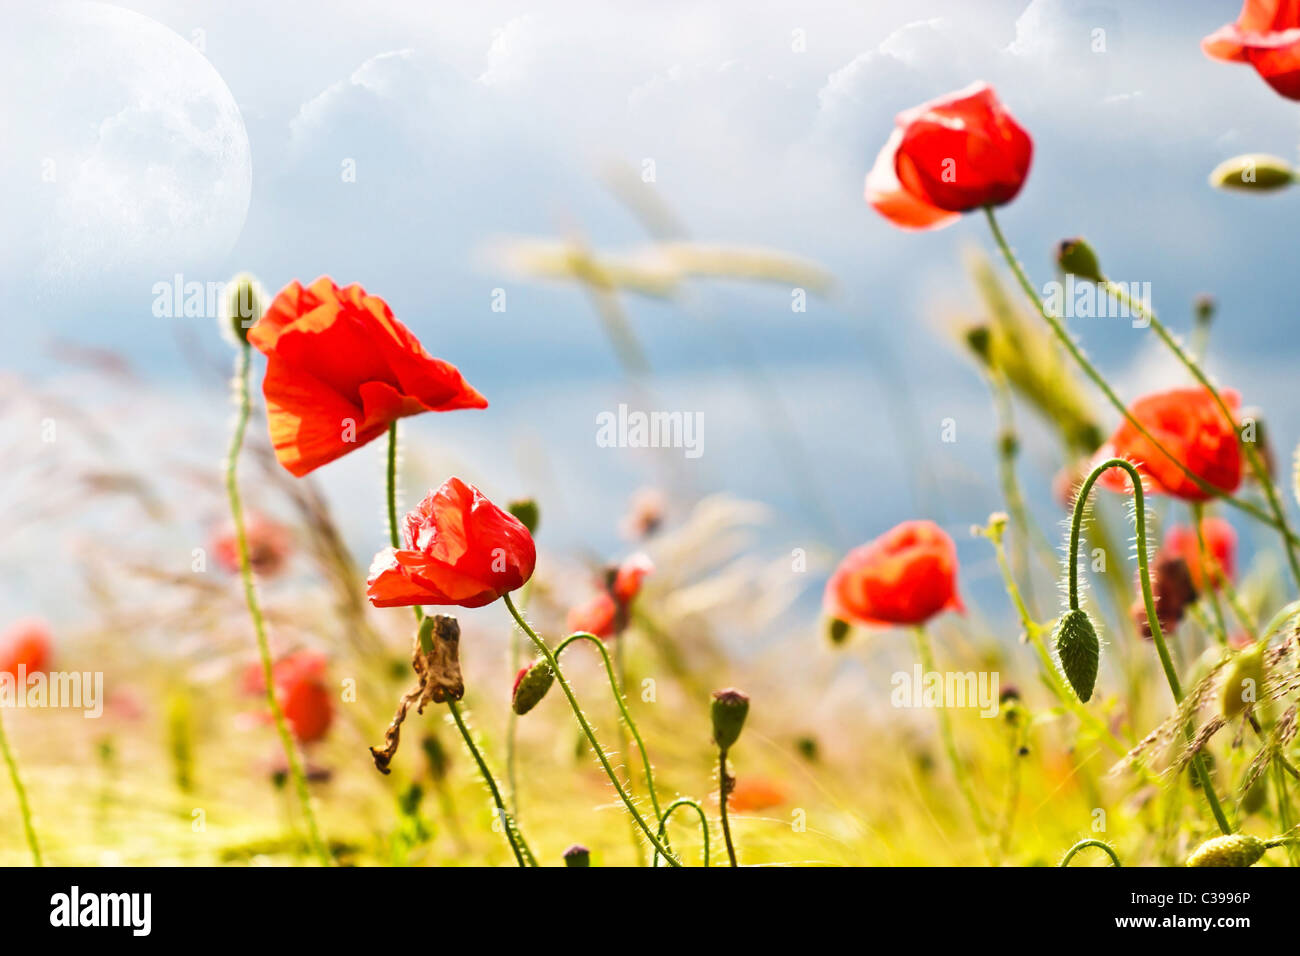 flowers on colorfull background - macro photo - Stock Image